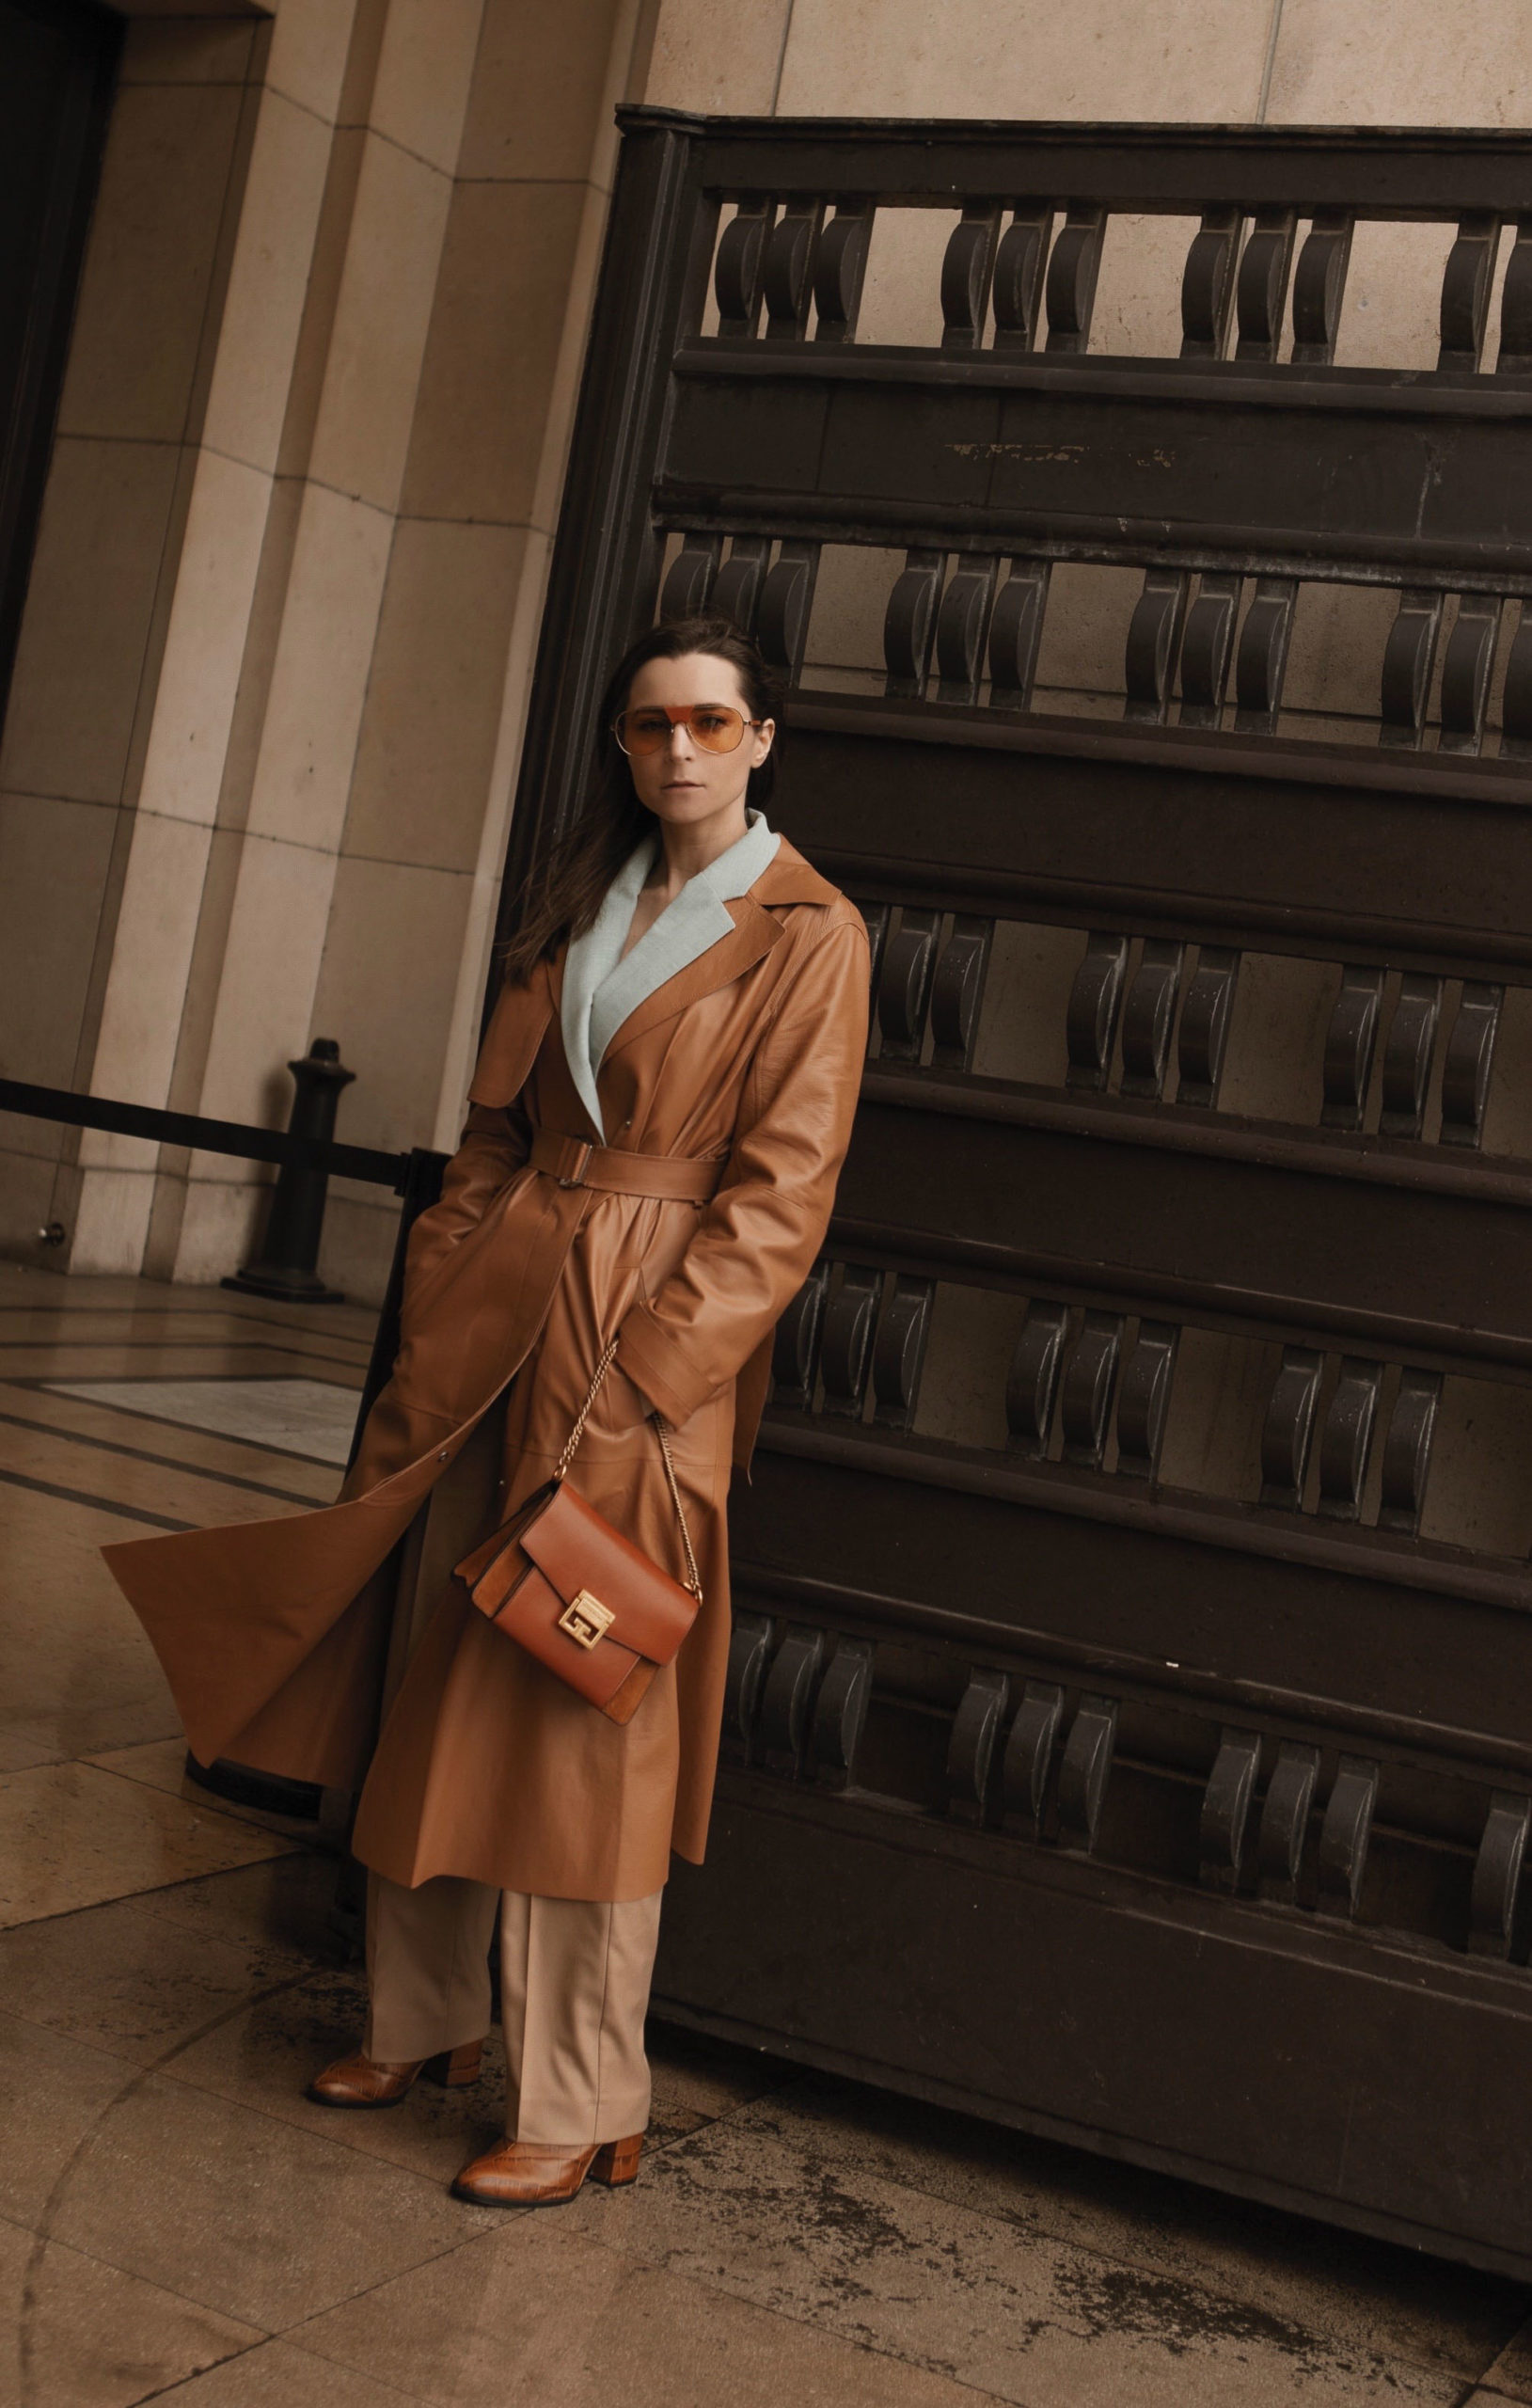 caramel trench paris fashion week street style 2020 AW march 2020 julia comil sportmax